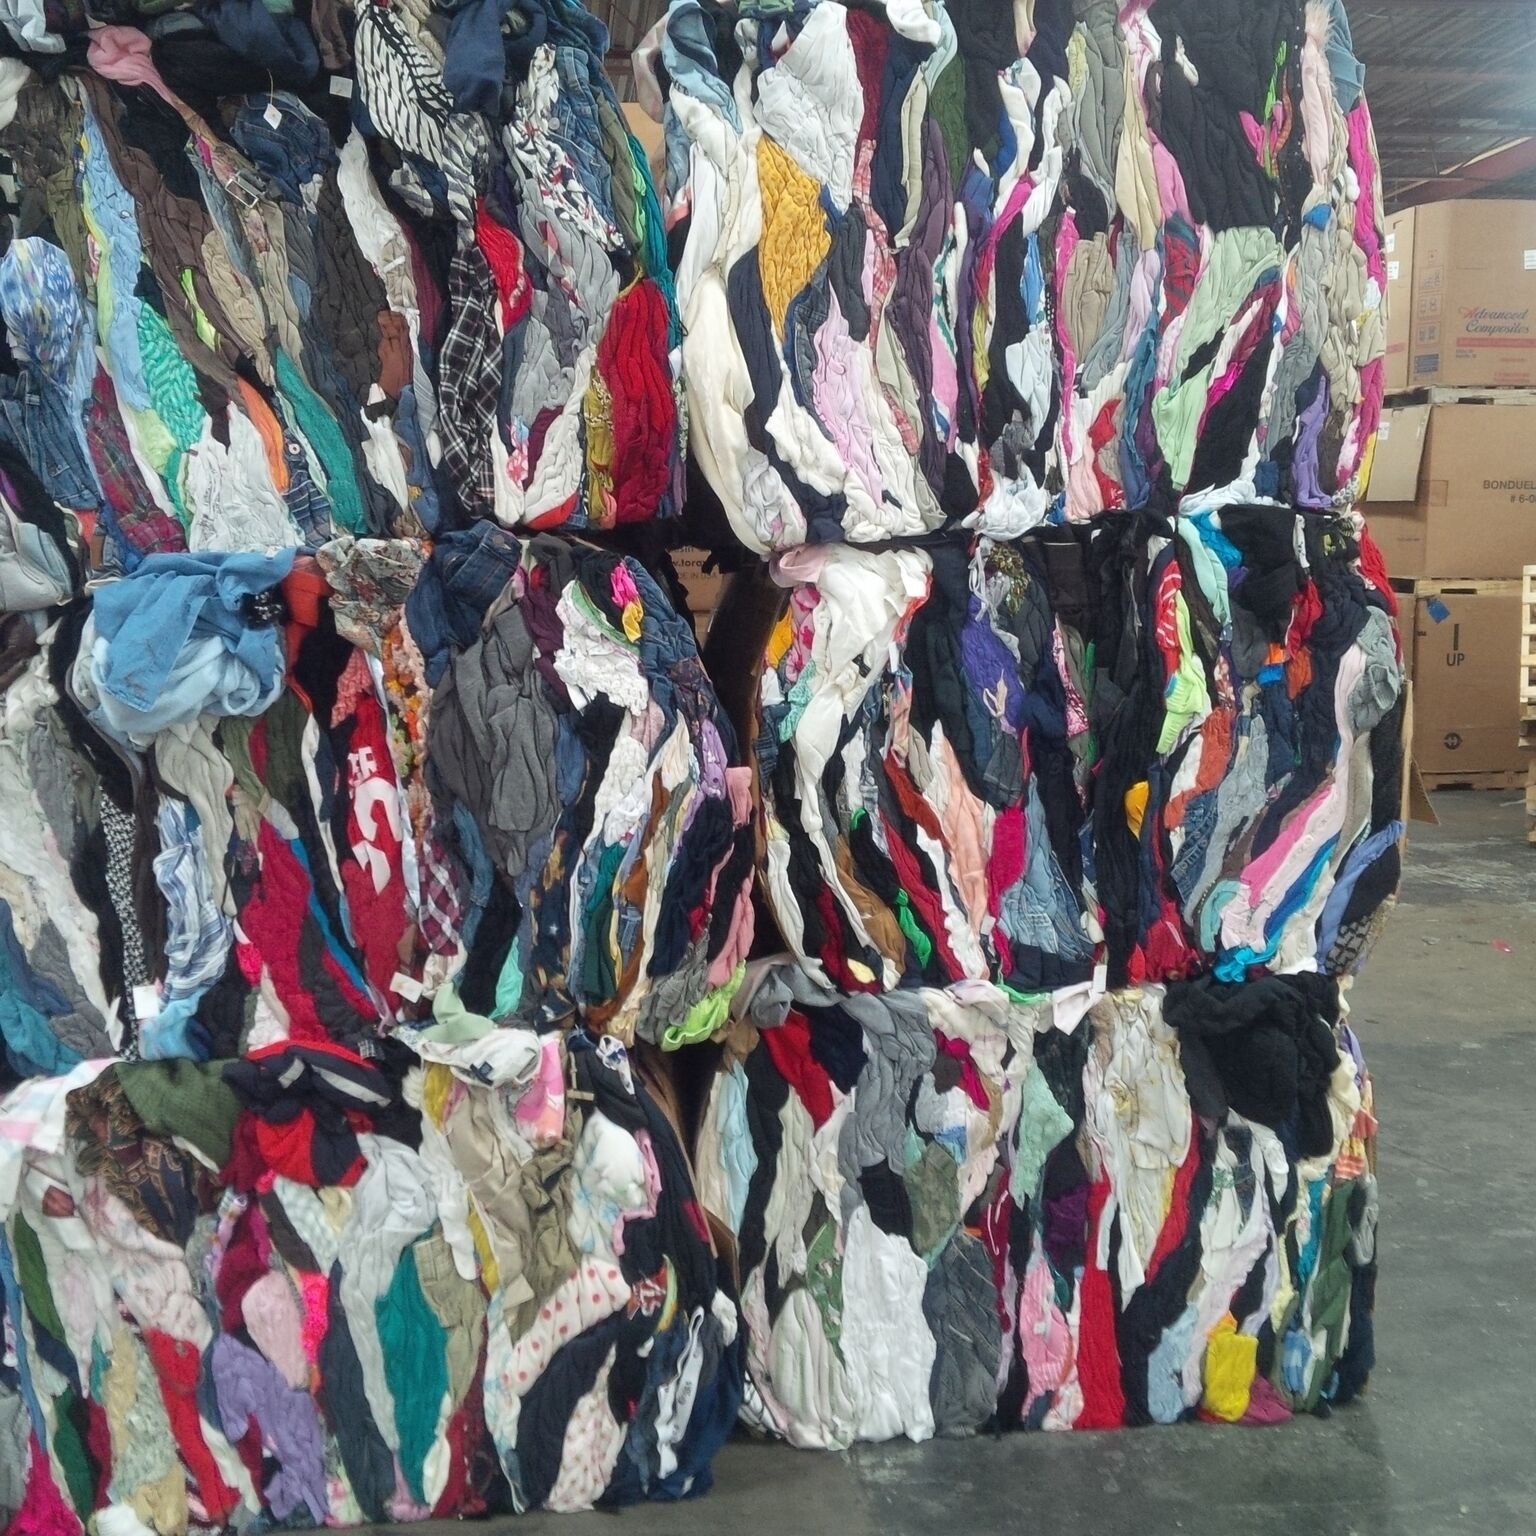 The 4 1 1 About Mixed Rags And Mixed Rag Markets Bank